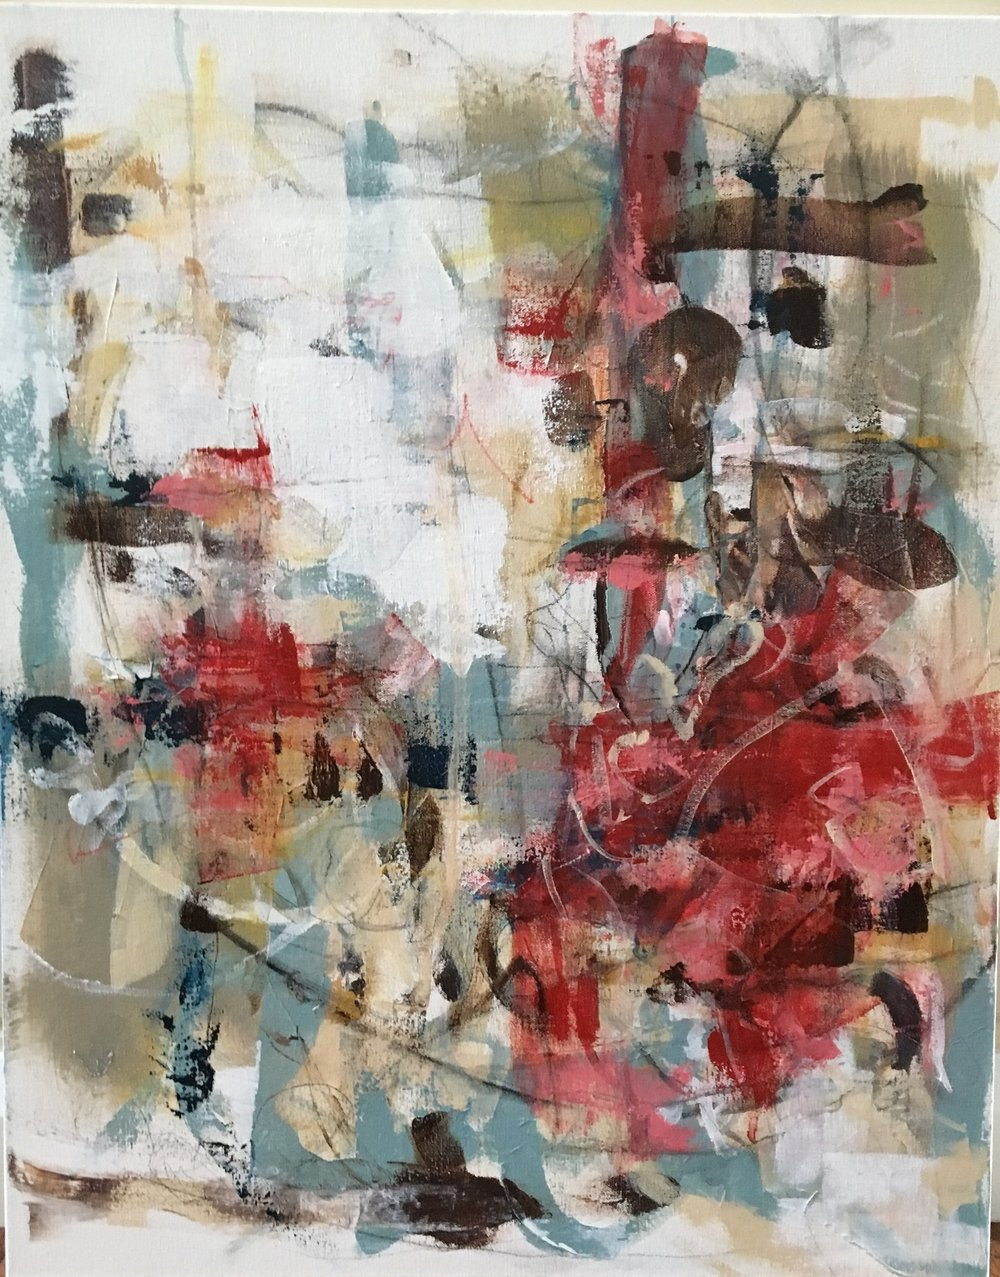 24 x 30 Original Abstract Acrylic on gallery wrapped canvas